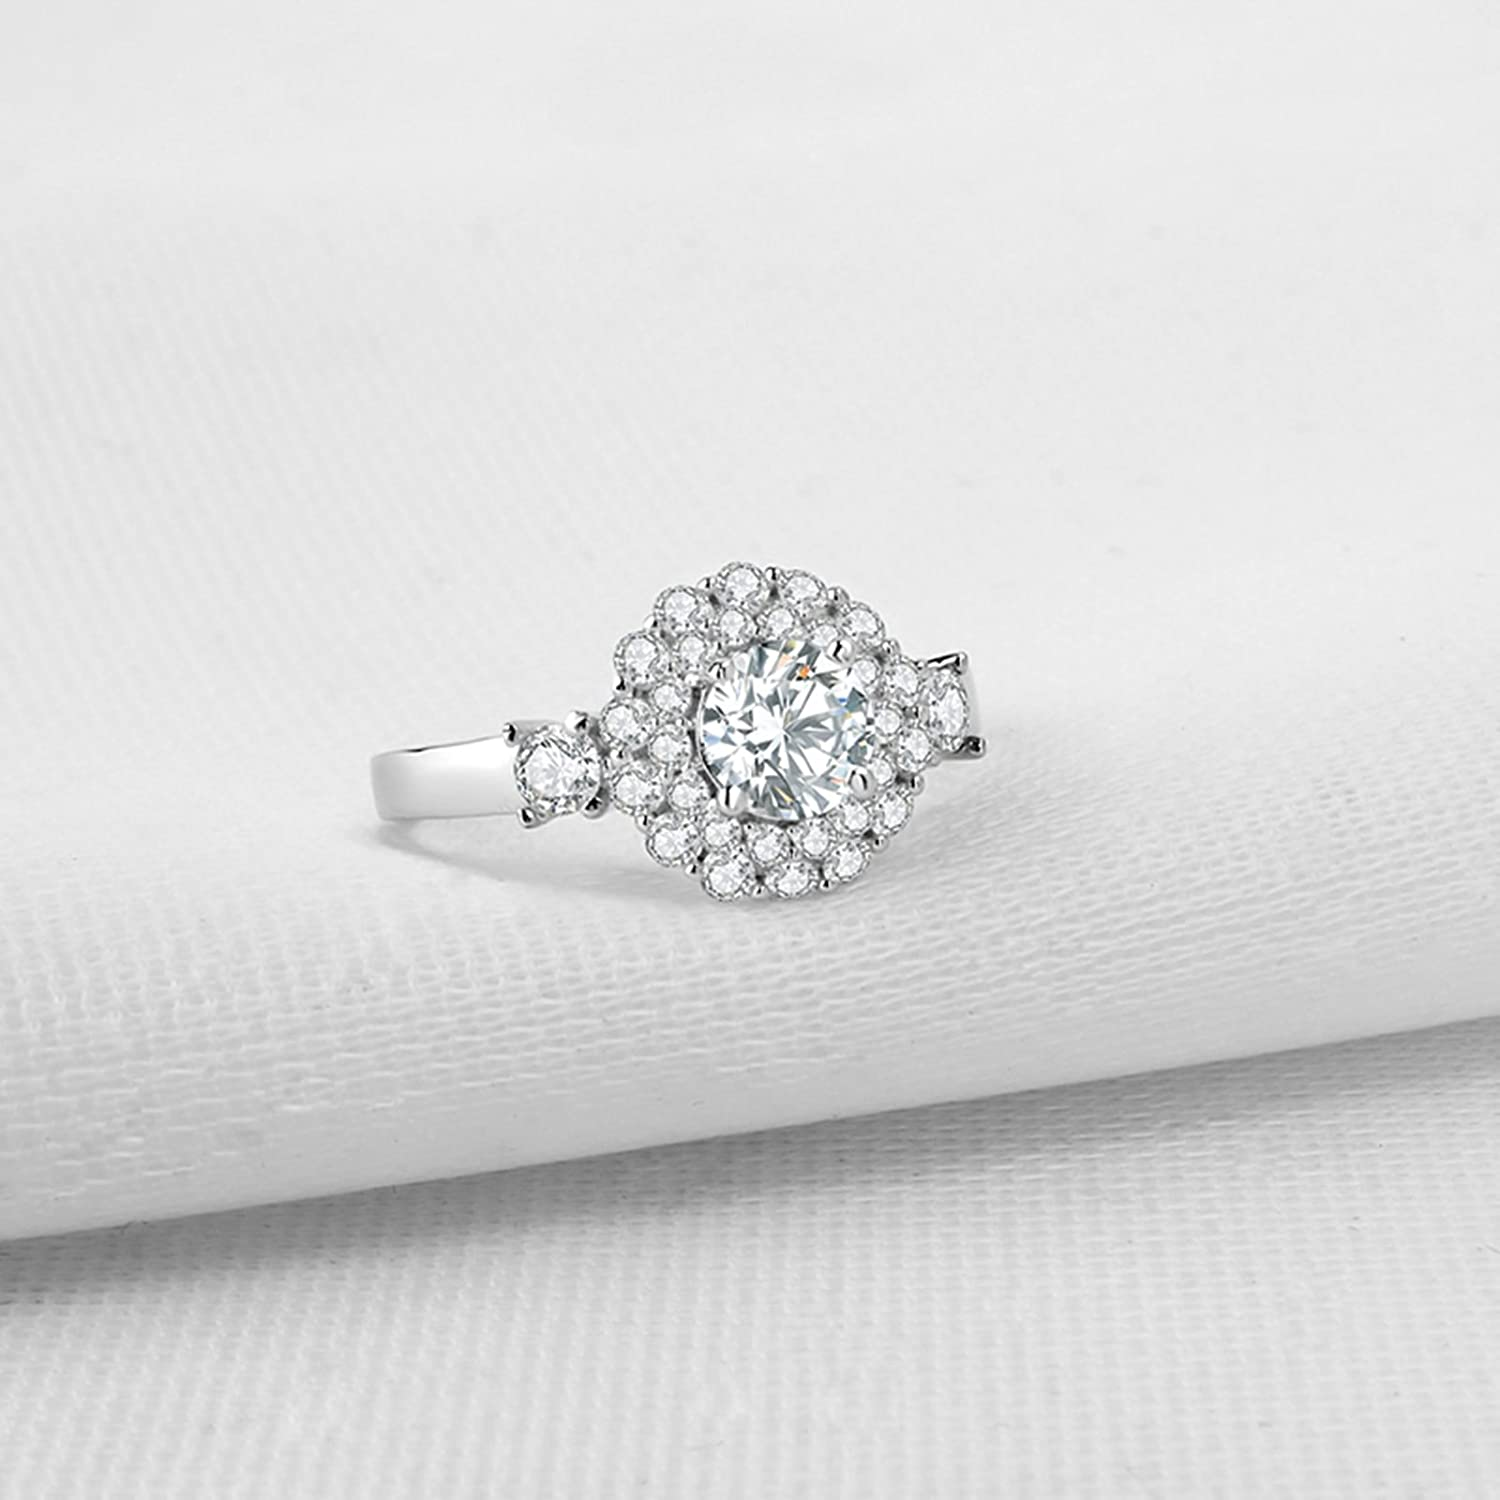 Bishilin Wedding Band Ring Cubic Zirconia for Women Round Cubic Zirconia Flower Ring Size 8